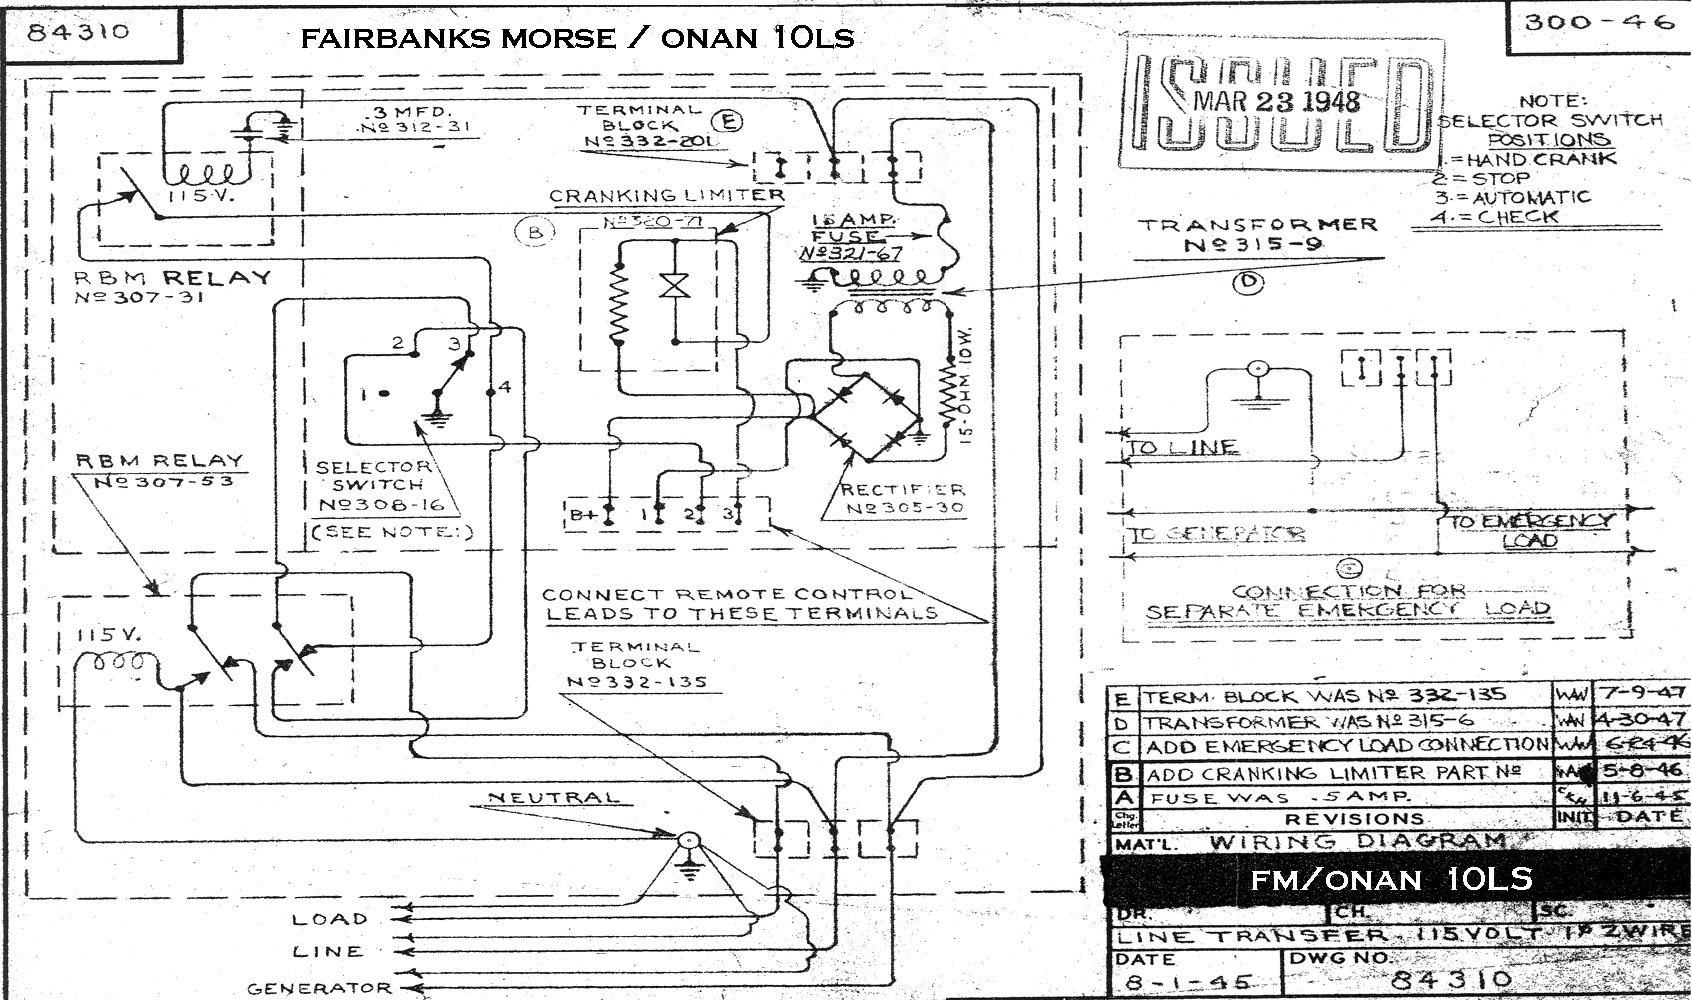 10LS wiring dia 1692_full onan wiring diagram onan wiring diagram 611 1127 \u2022 wiring diagrams onan 5500 marquis gold generator wiring diagram at creativeand.co